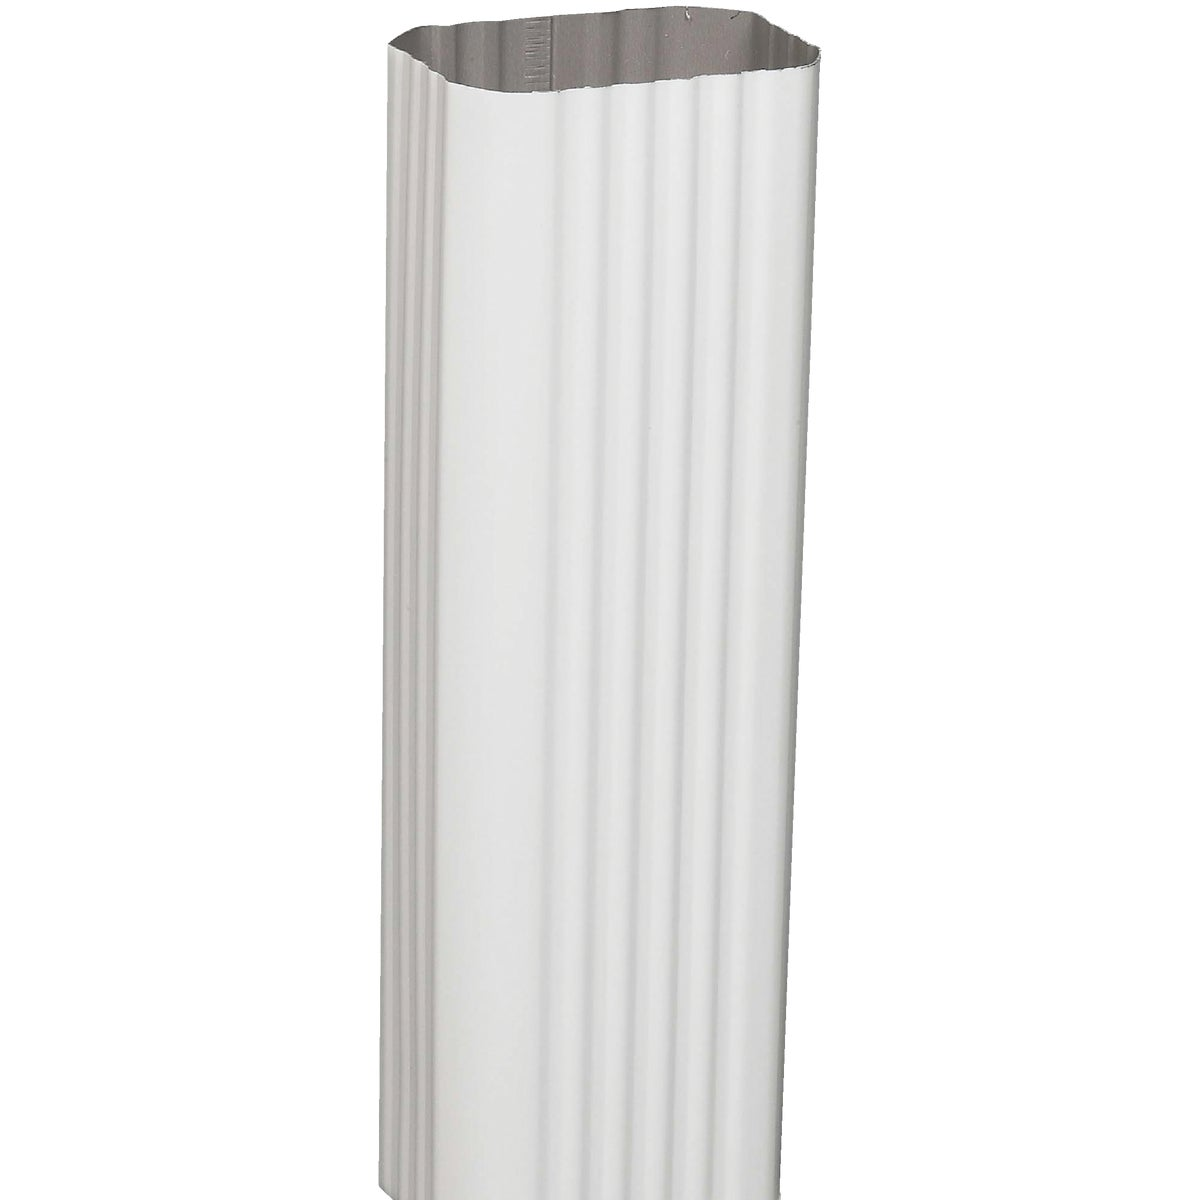 2X3 WHITE ALUM DOWNSPOUT - 2601000120 by Amerimax Home Prod